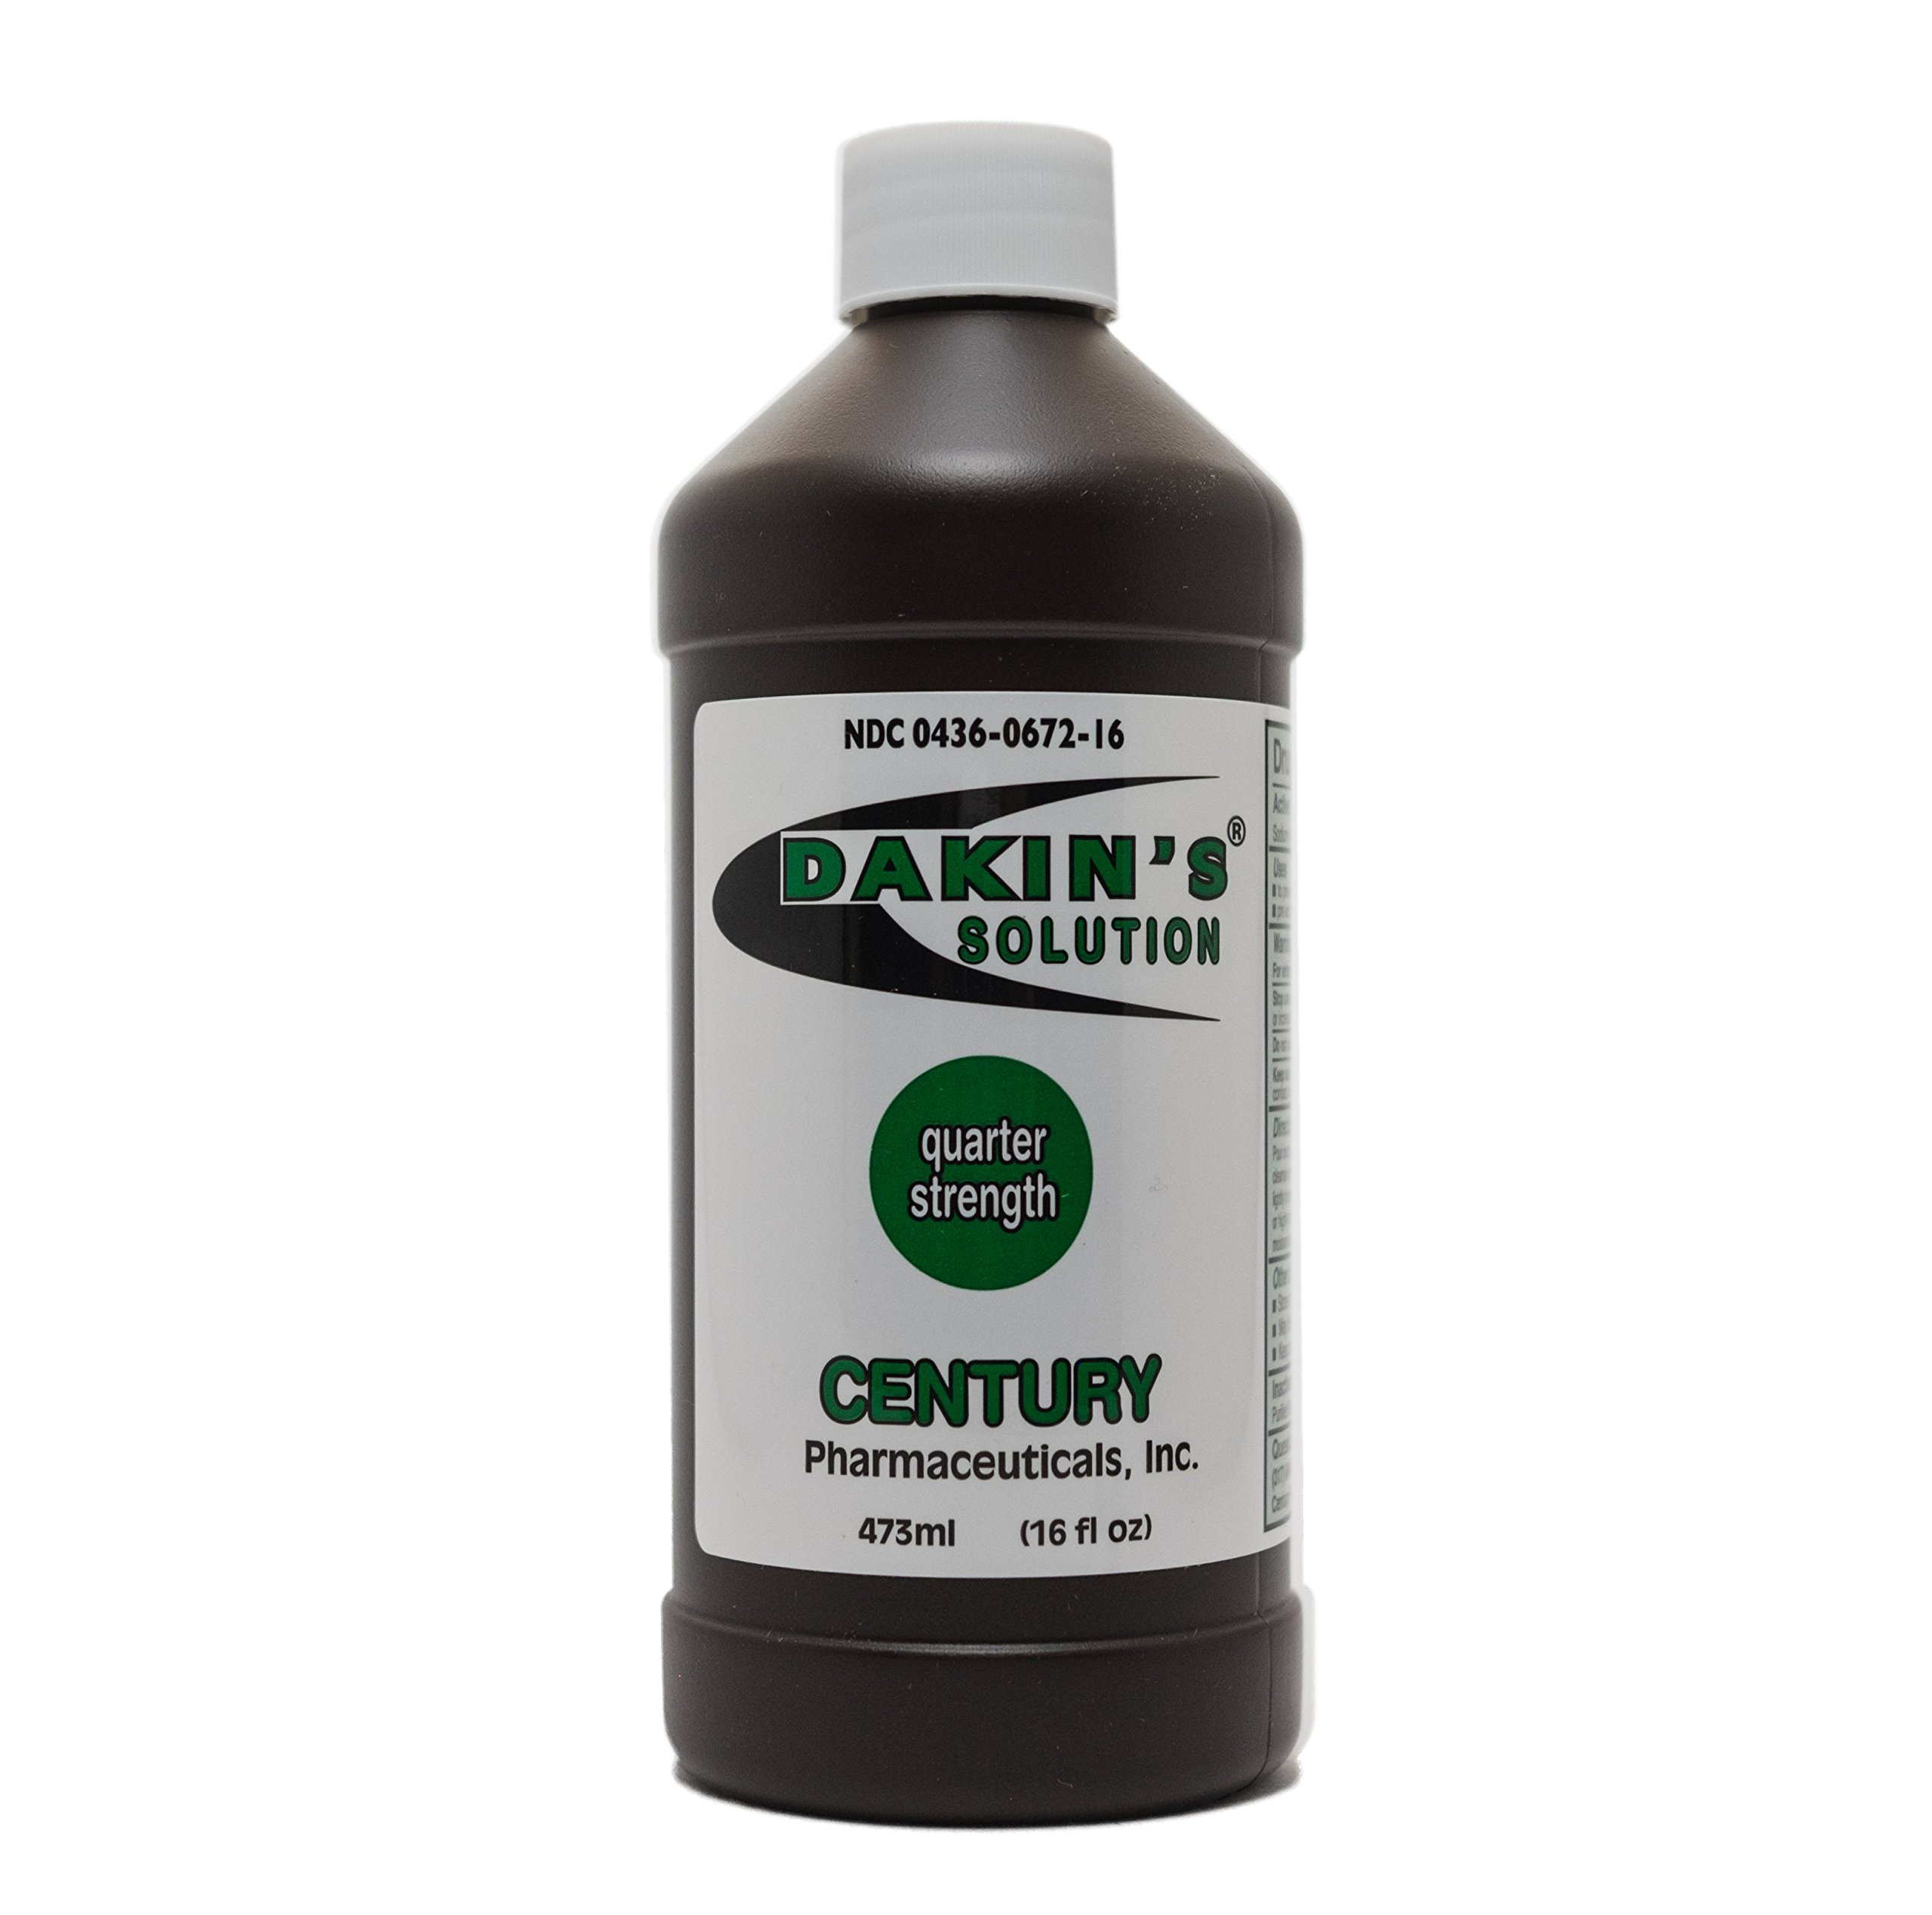 Dakin's Solution-Quarter Strength 304360672168 Sodium Hypochlorite 0.125% Wound Therapy for Acute and Chronic Wounds by Century Pharmaceuticals by Century Pharmaceuticals